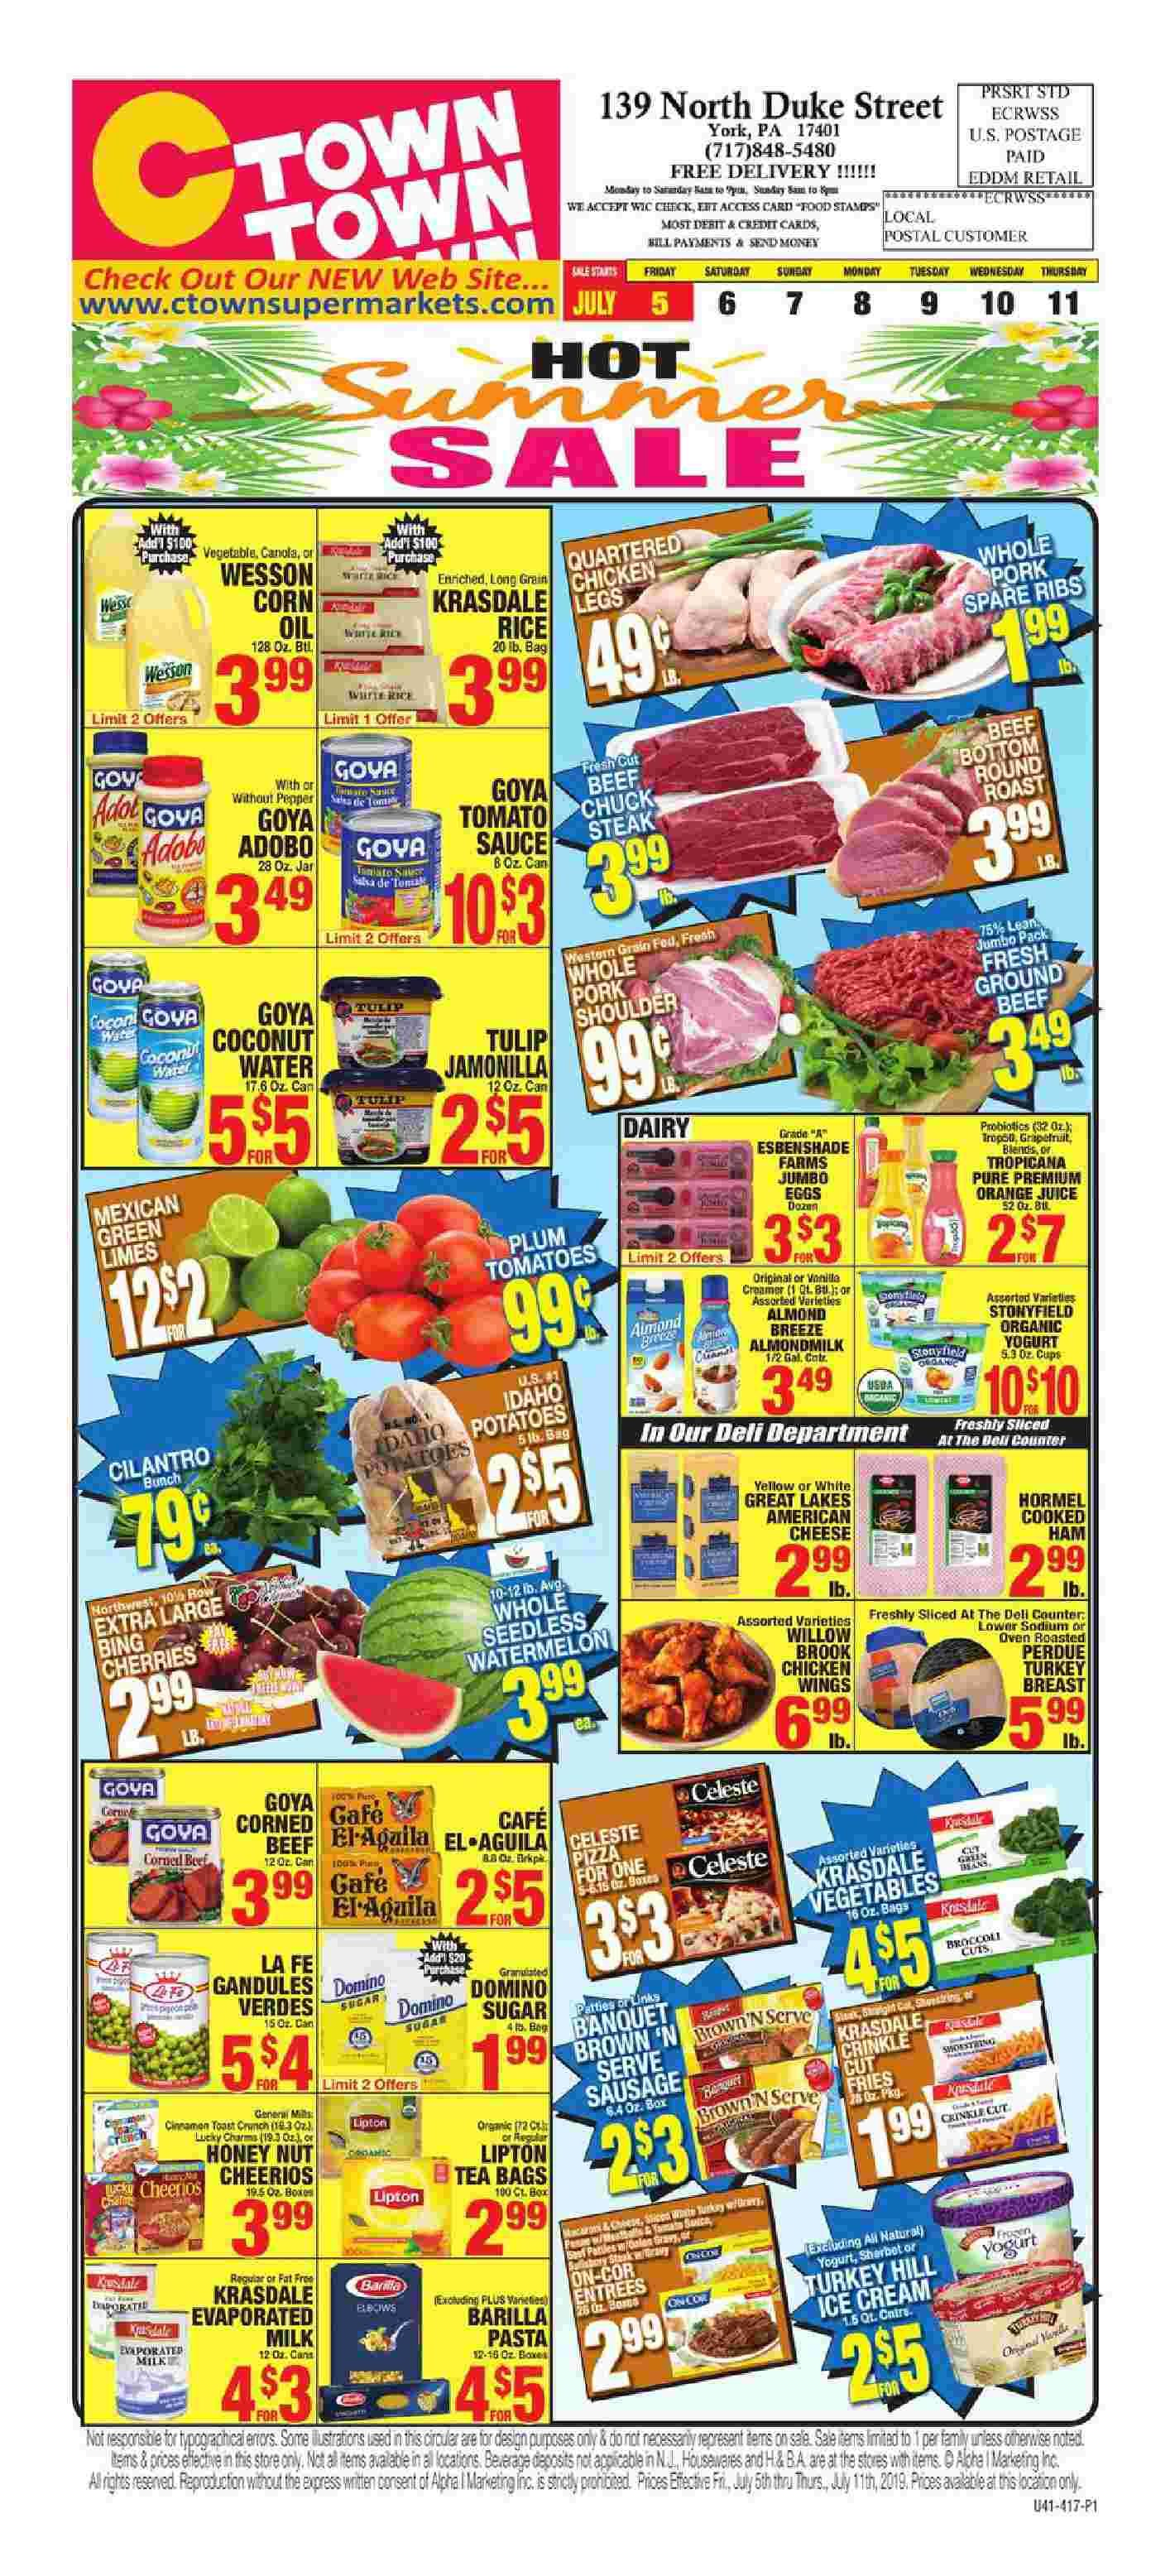 Ctown Supermarkets Weekly Ad Flyer July 5 11, 2019 チラシ